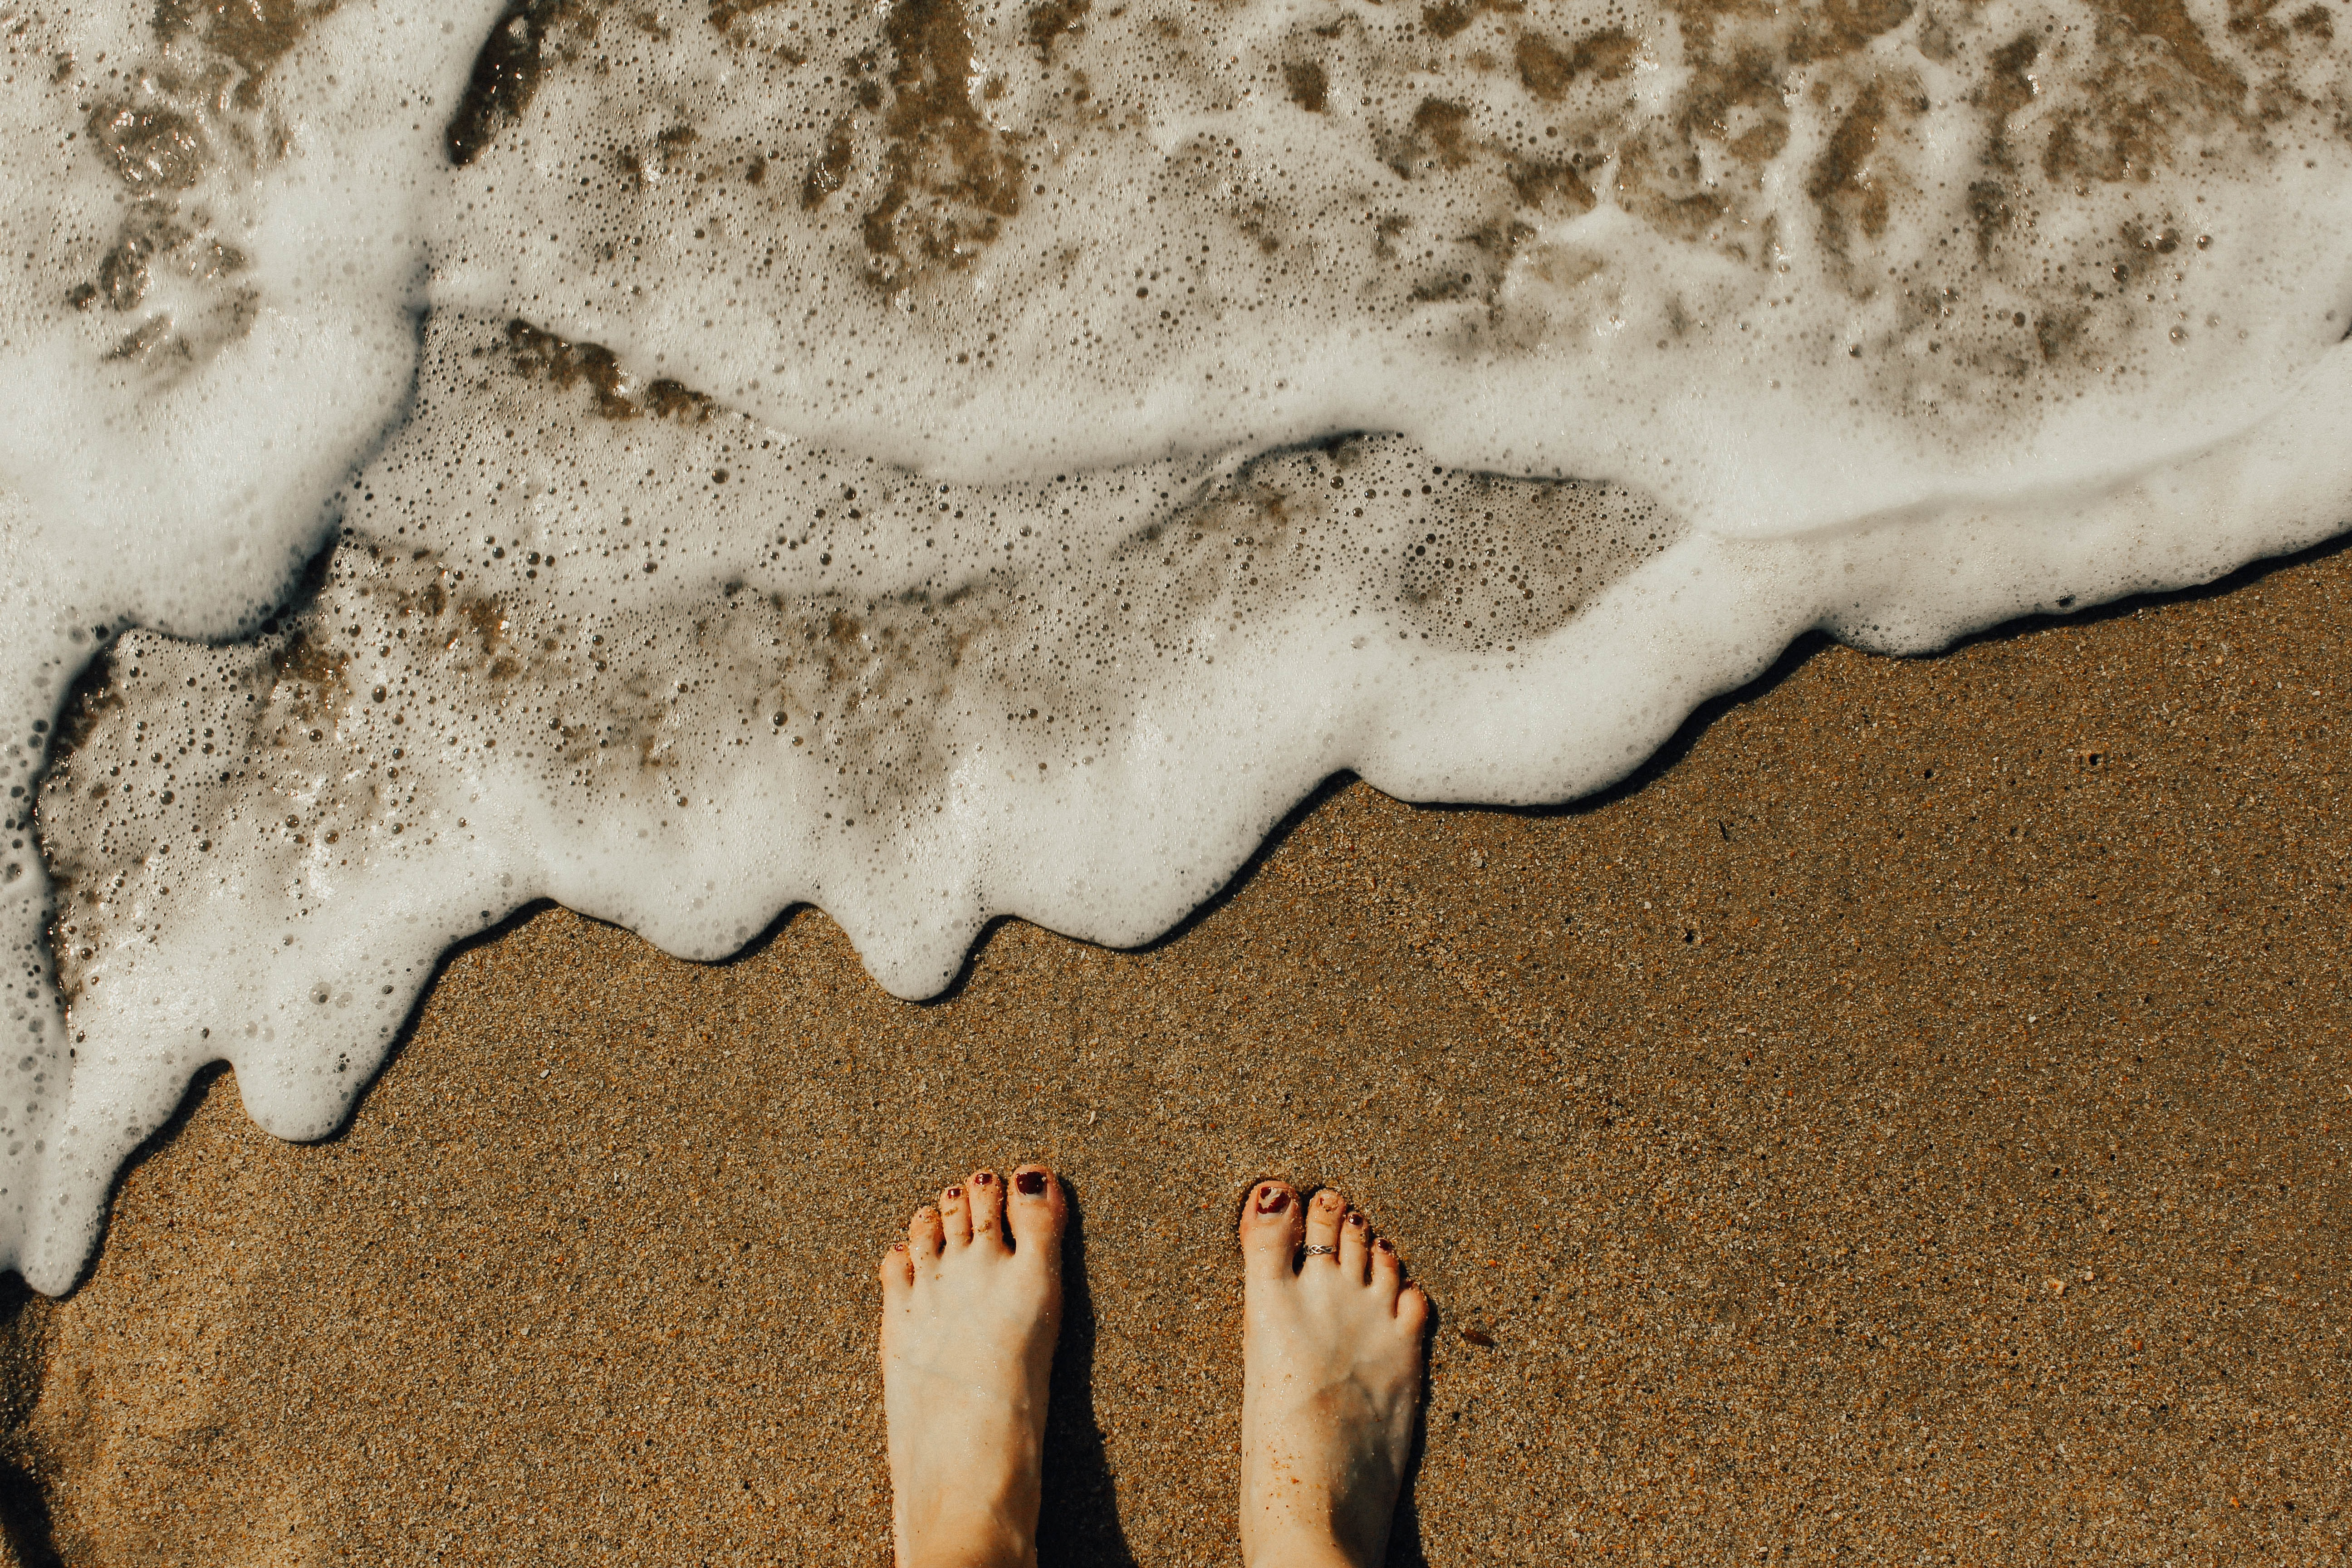 An overhead shot of a person's feet in wet coarse sand next to small foaming waves